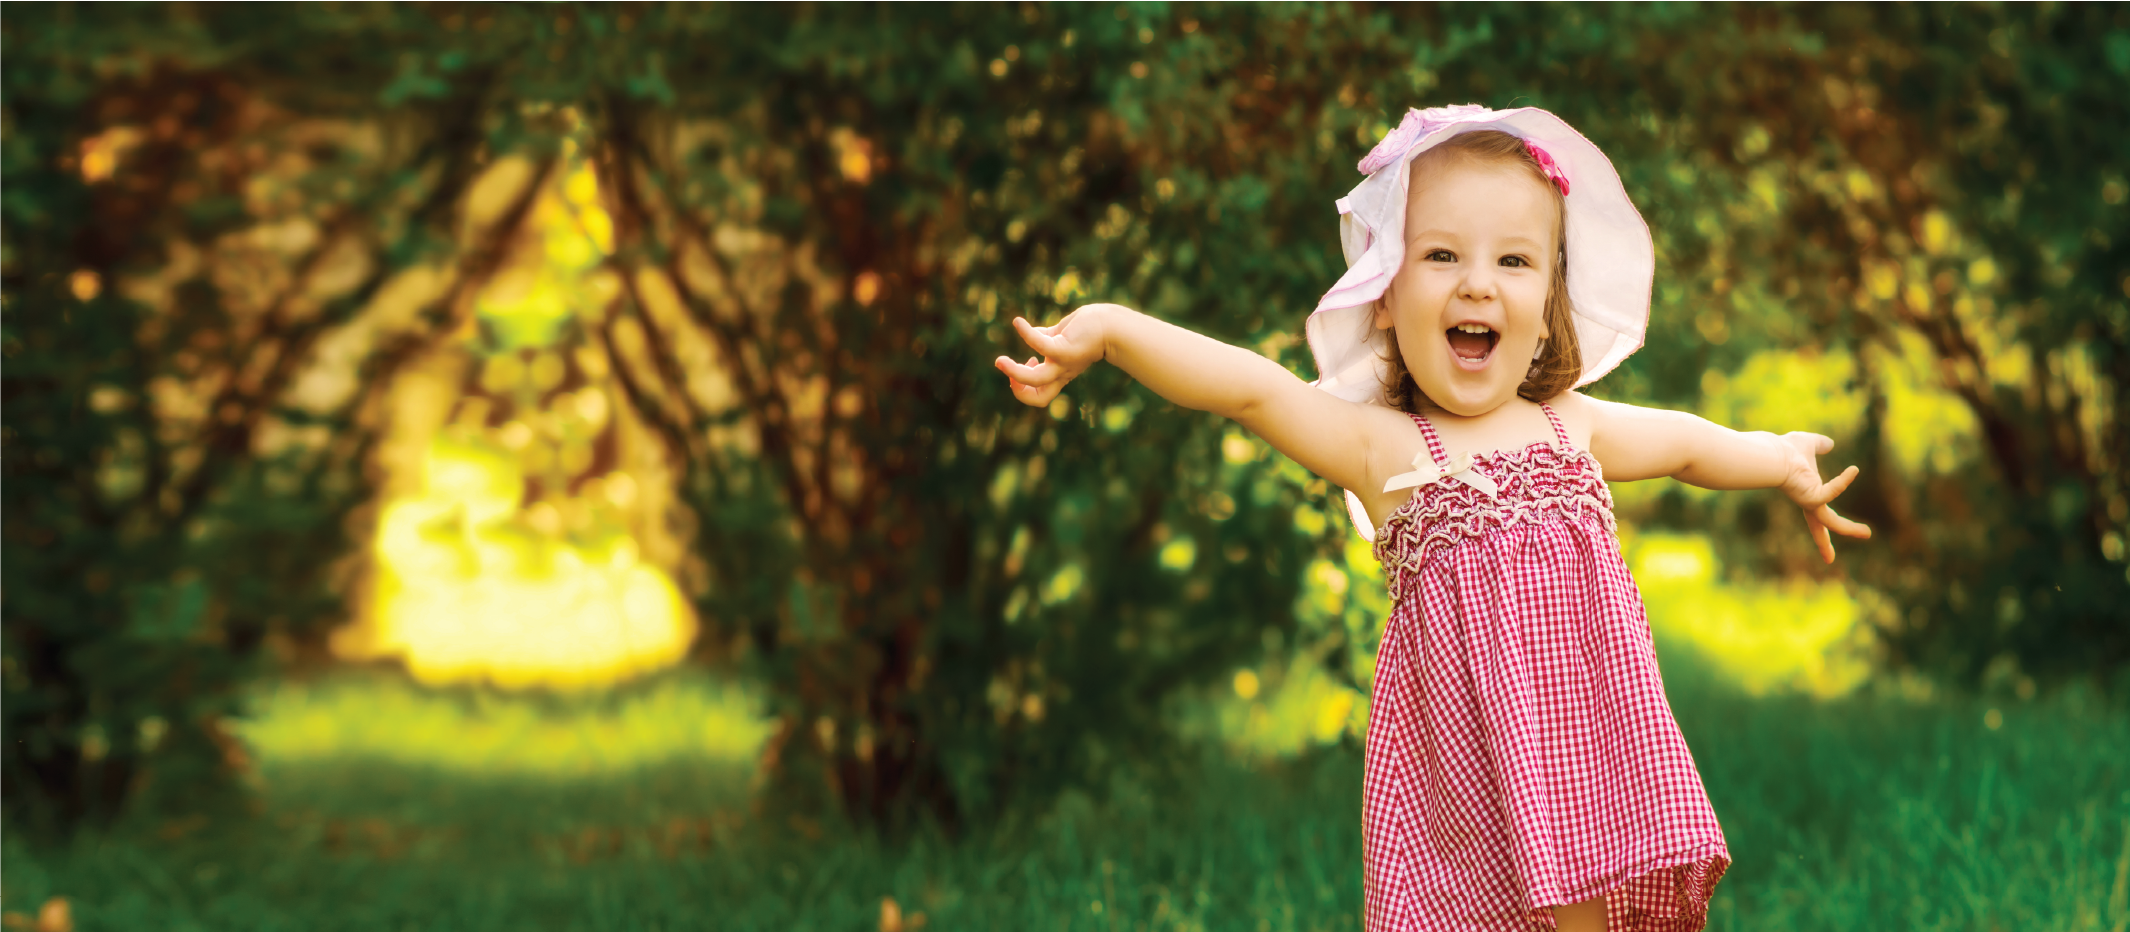 Outdoor portrait of a cute young white little girl smiling - white people